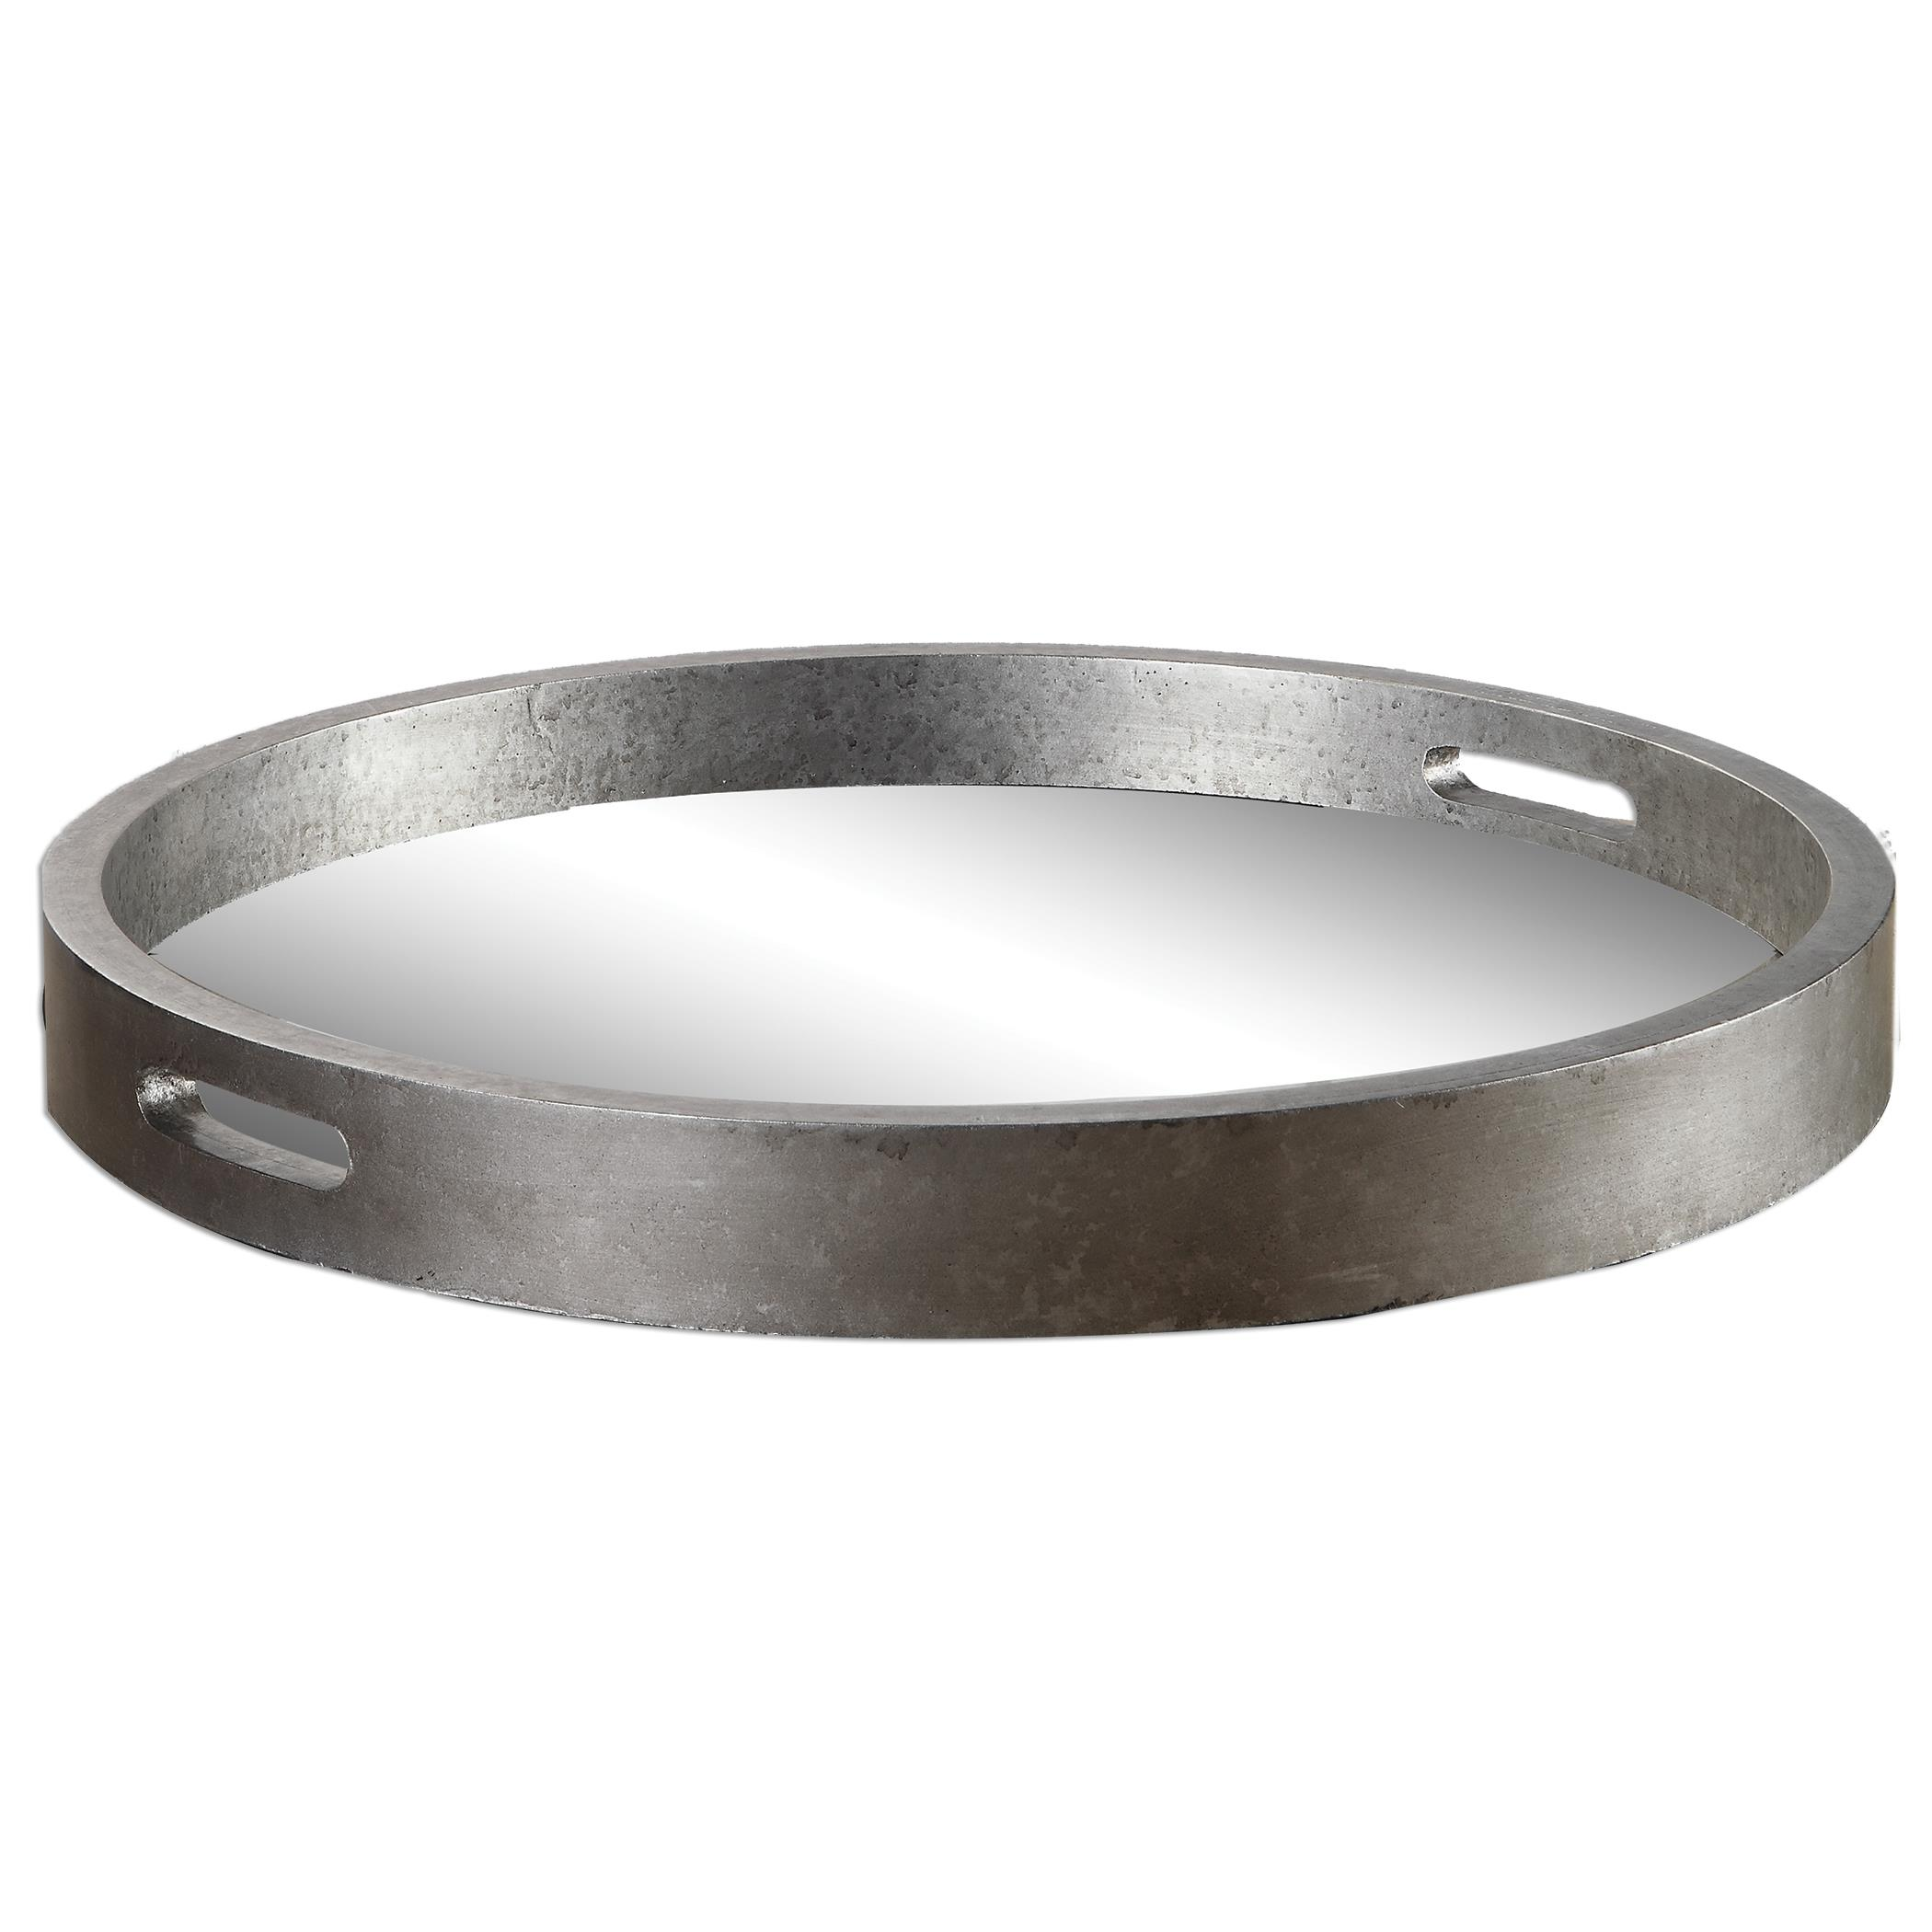 Accessories Bechet Round Silver Tray by Uttermost at Dunk & Bright Furniture